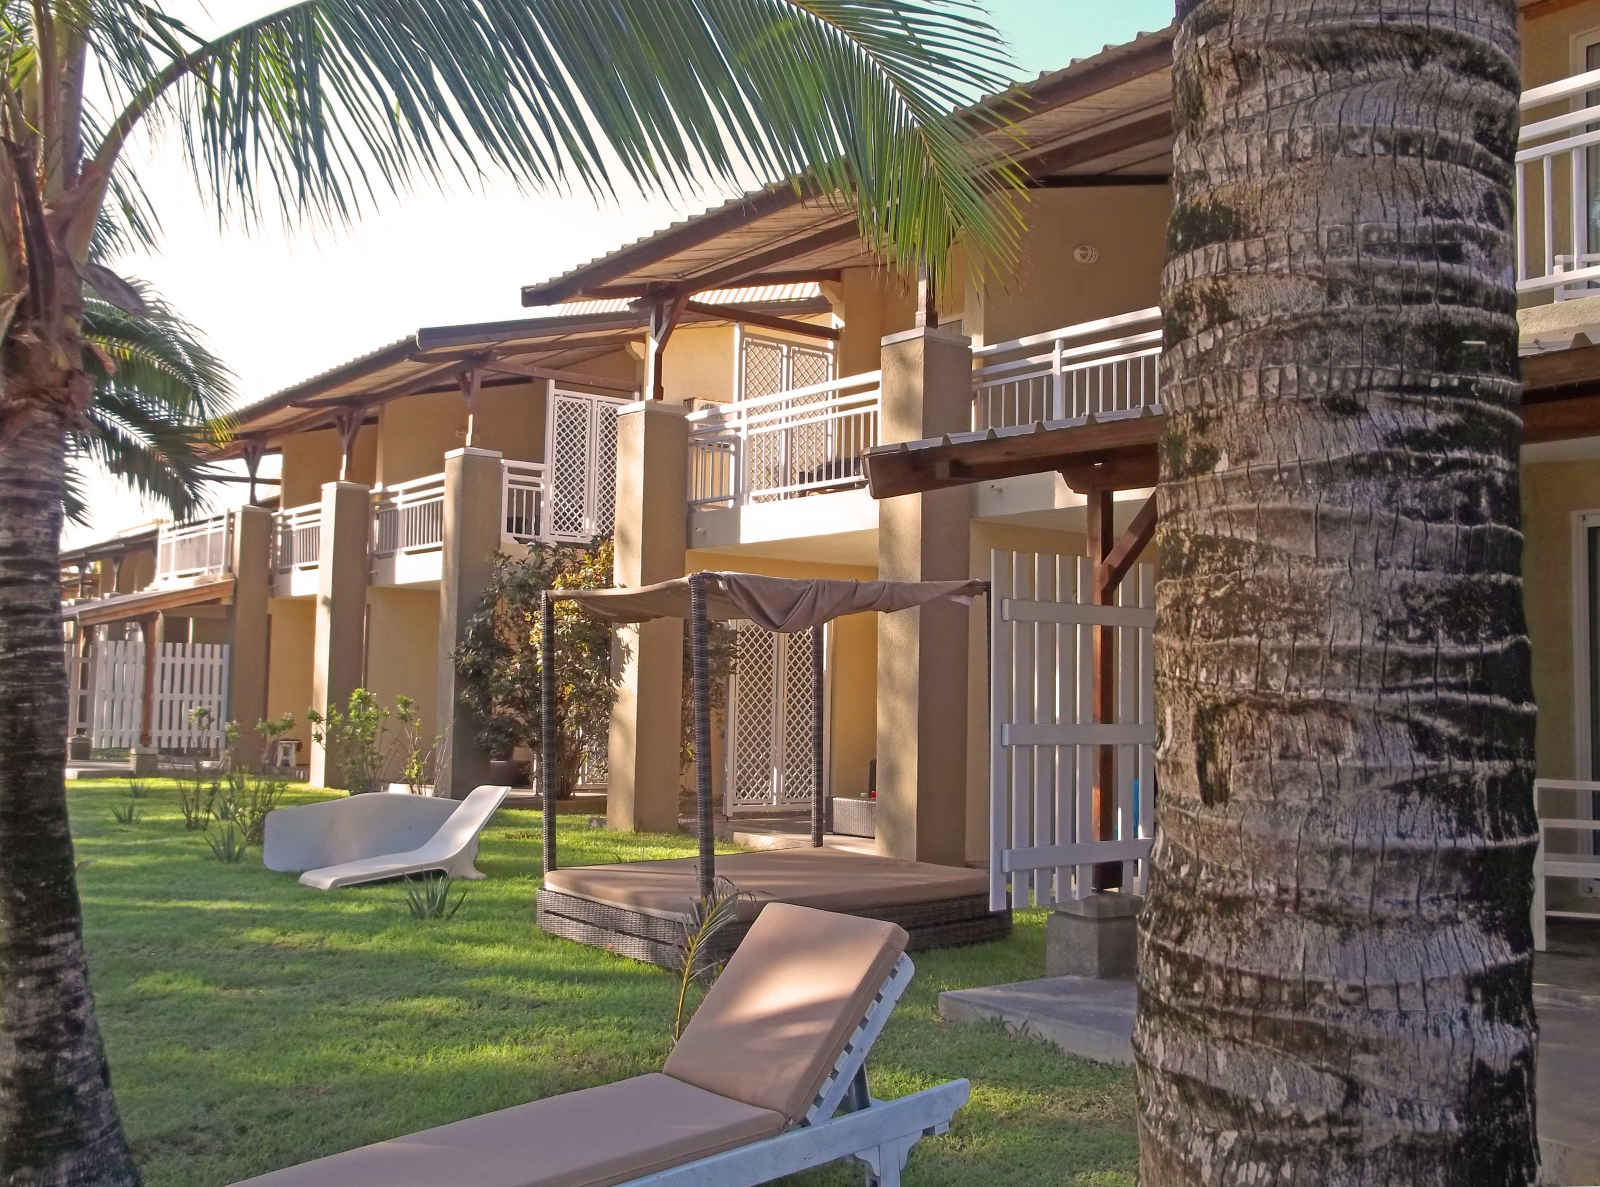 Rodrigues : Cotton Bay Hotel